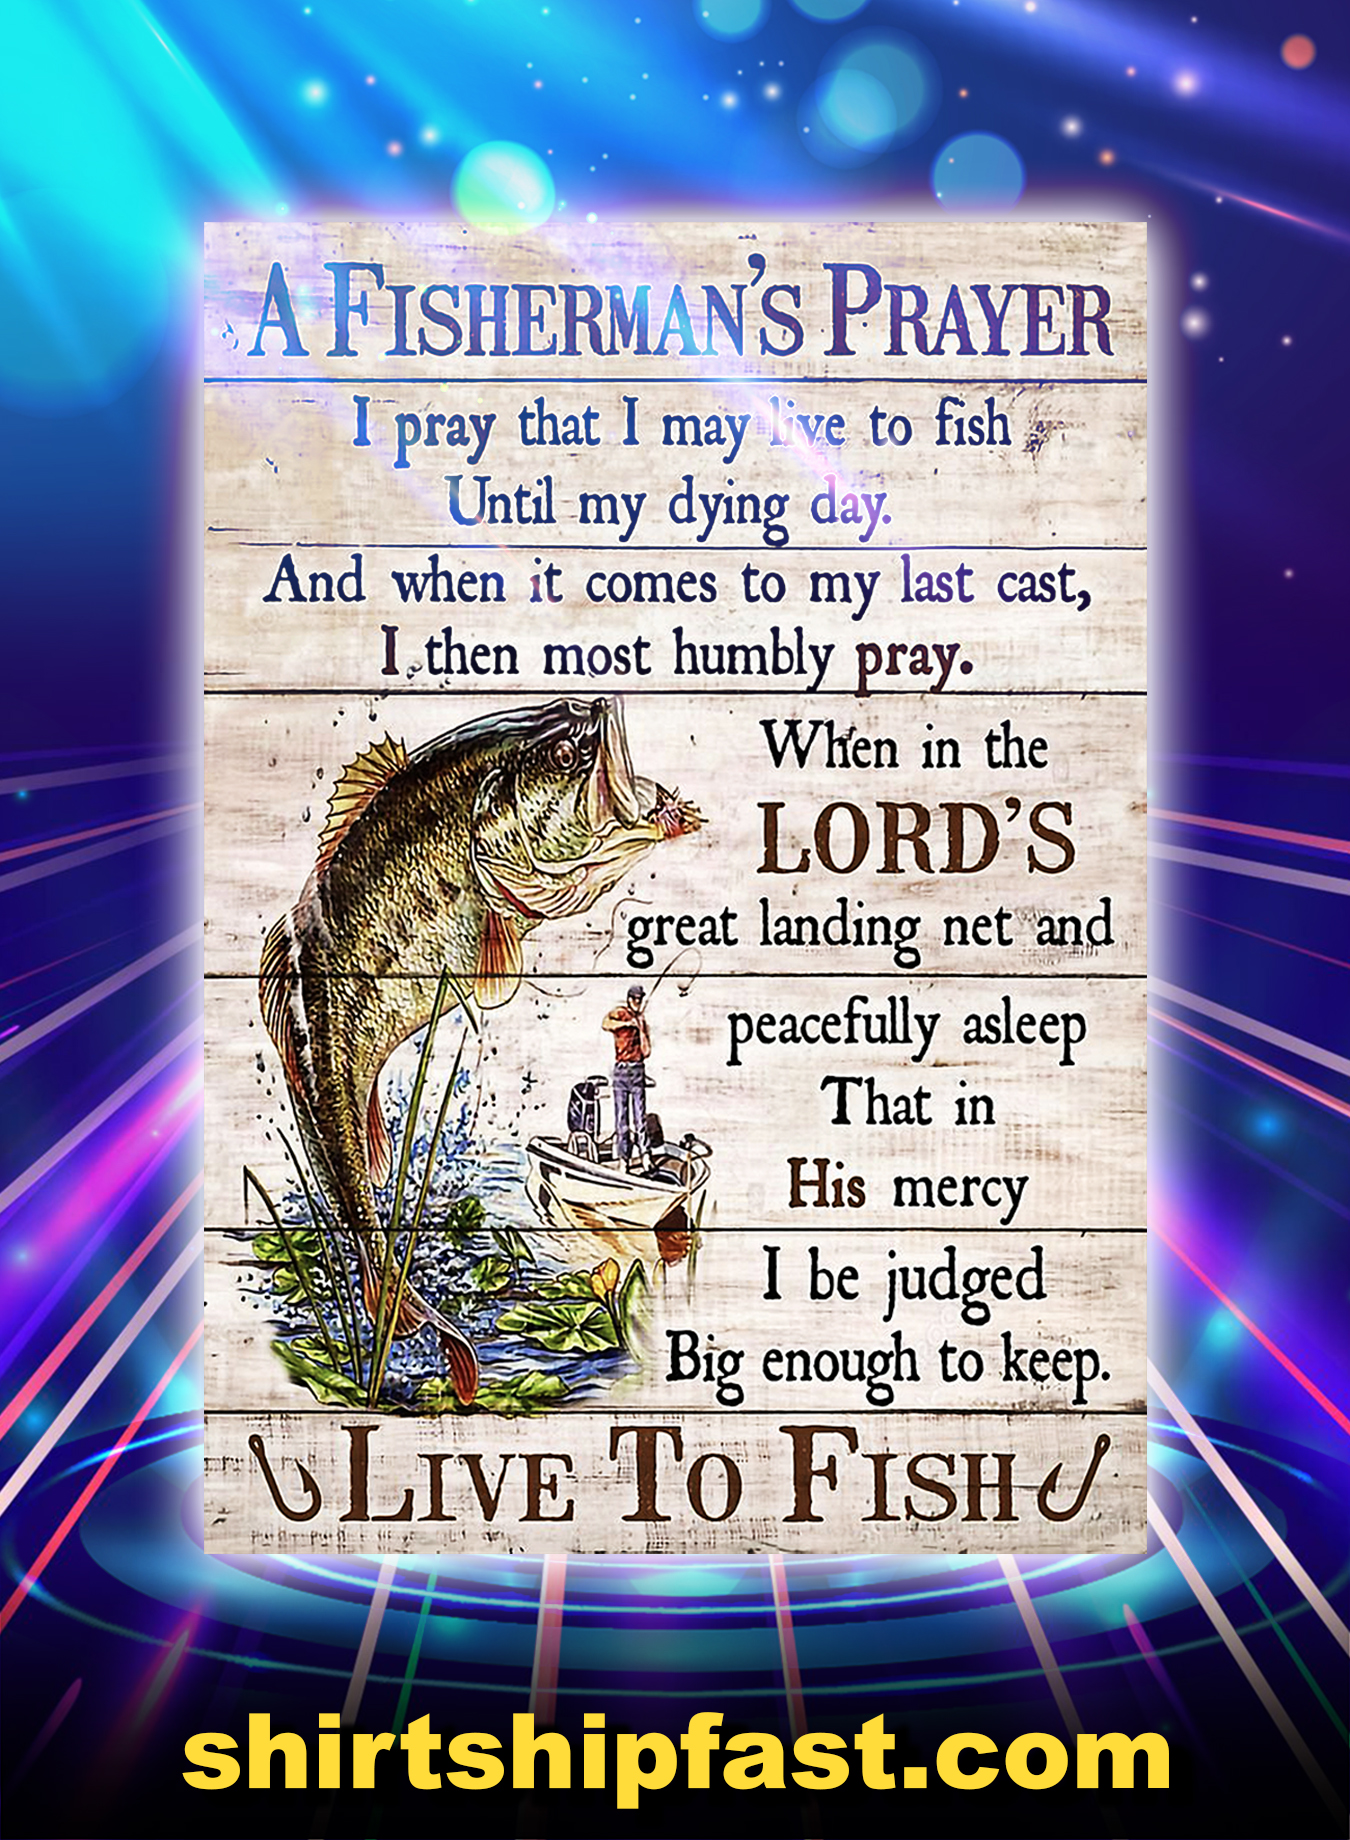 Fishing A Fisherman's Prayer Live To Fish Poster - A3